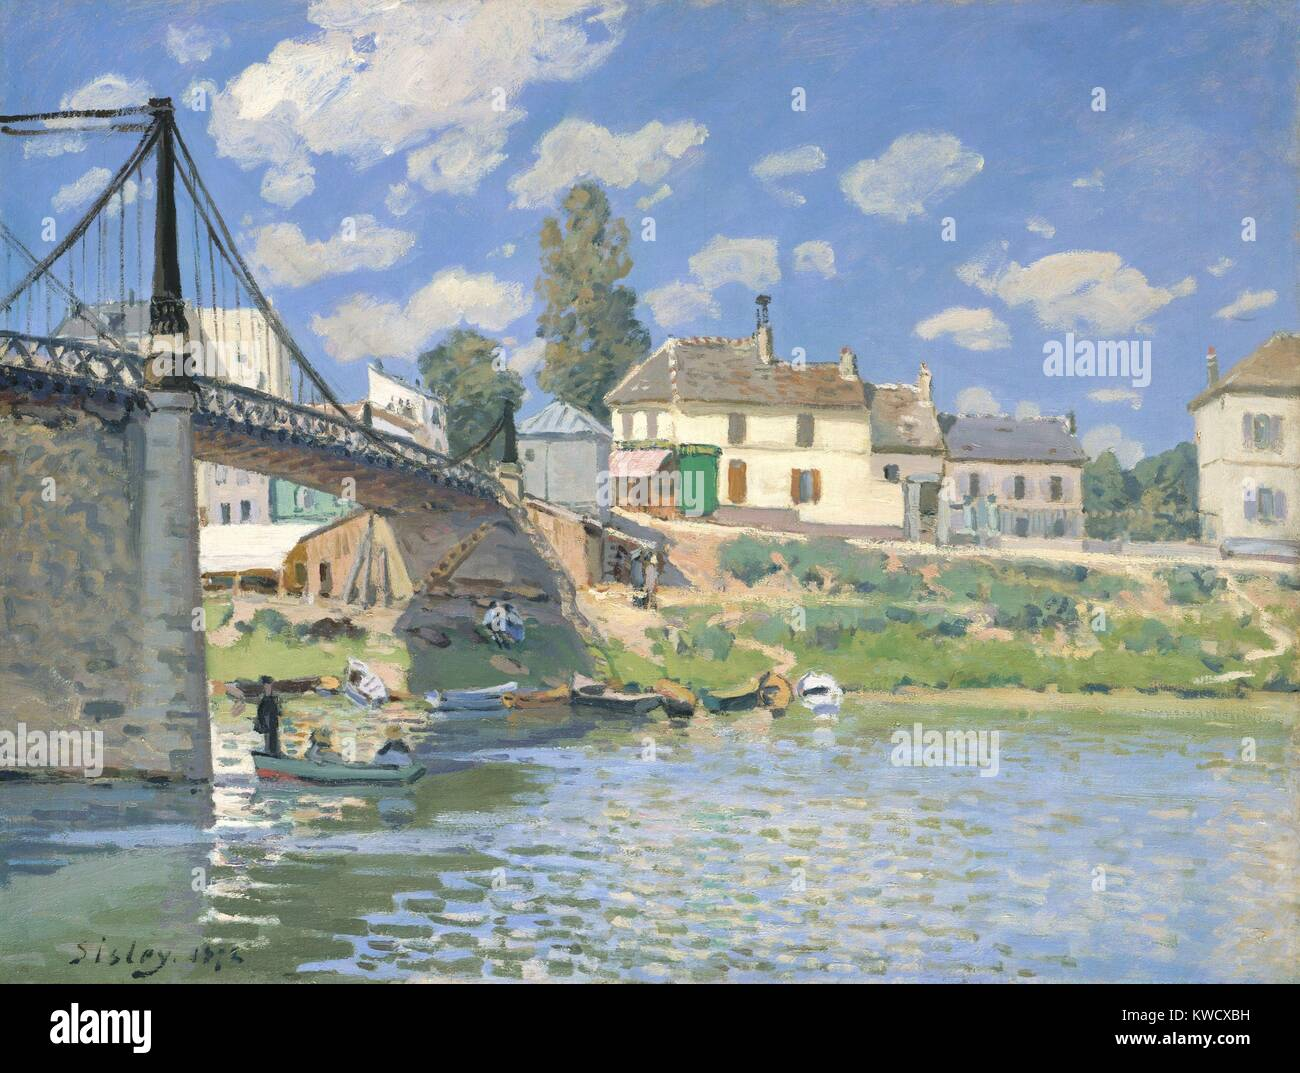 The Bridge at Villeneuve-la-Garenne, by Alfred Sisley, 1872, French impressionist oil painting. Sisley painted this - Stock Image